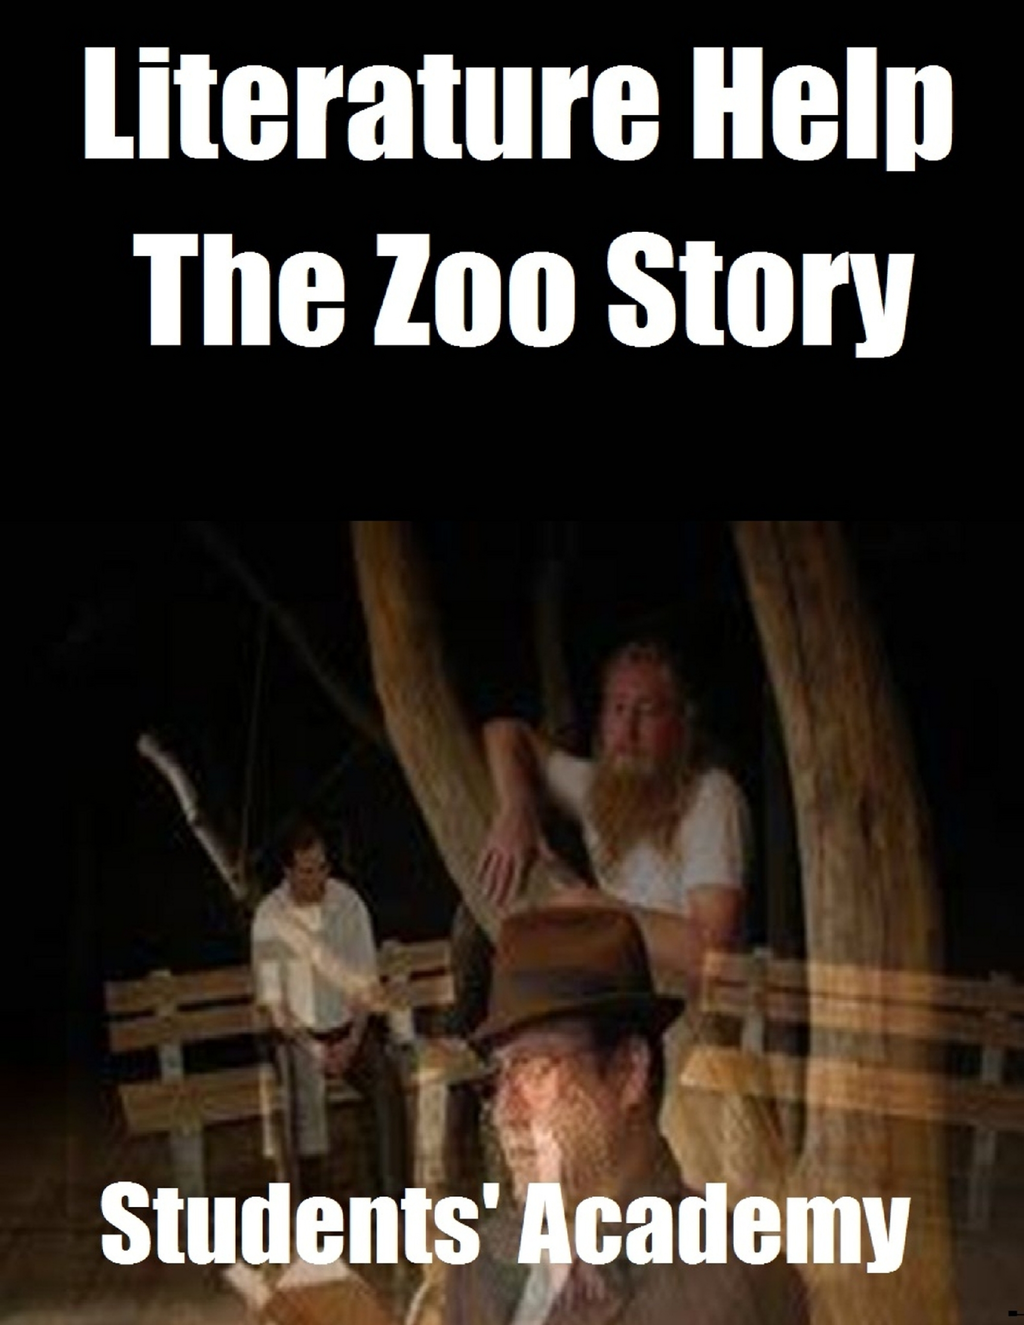 zoo story analysis Edward albee the zoo story full scriptpdf free download here edward albee´s the zoo story - that theatre company  articles as assigned, zoo story by edward albee,  script  analysis, collaboration,  your grade will be lowered up to a full letter grade.